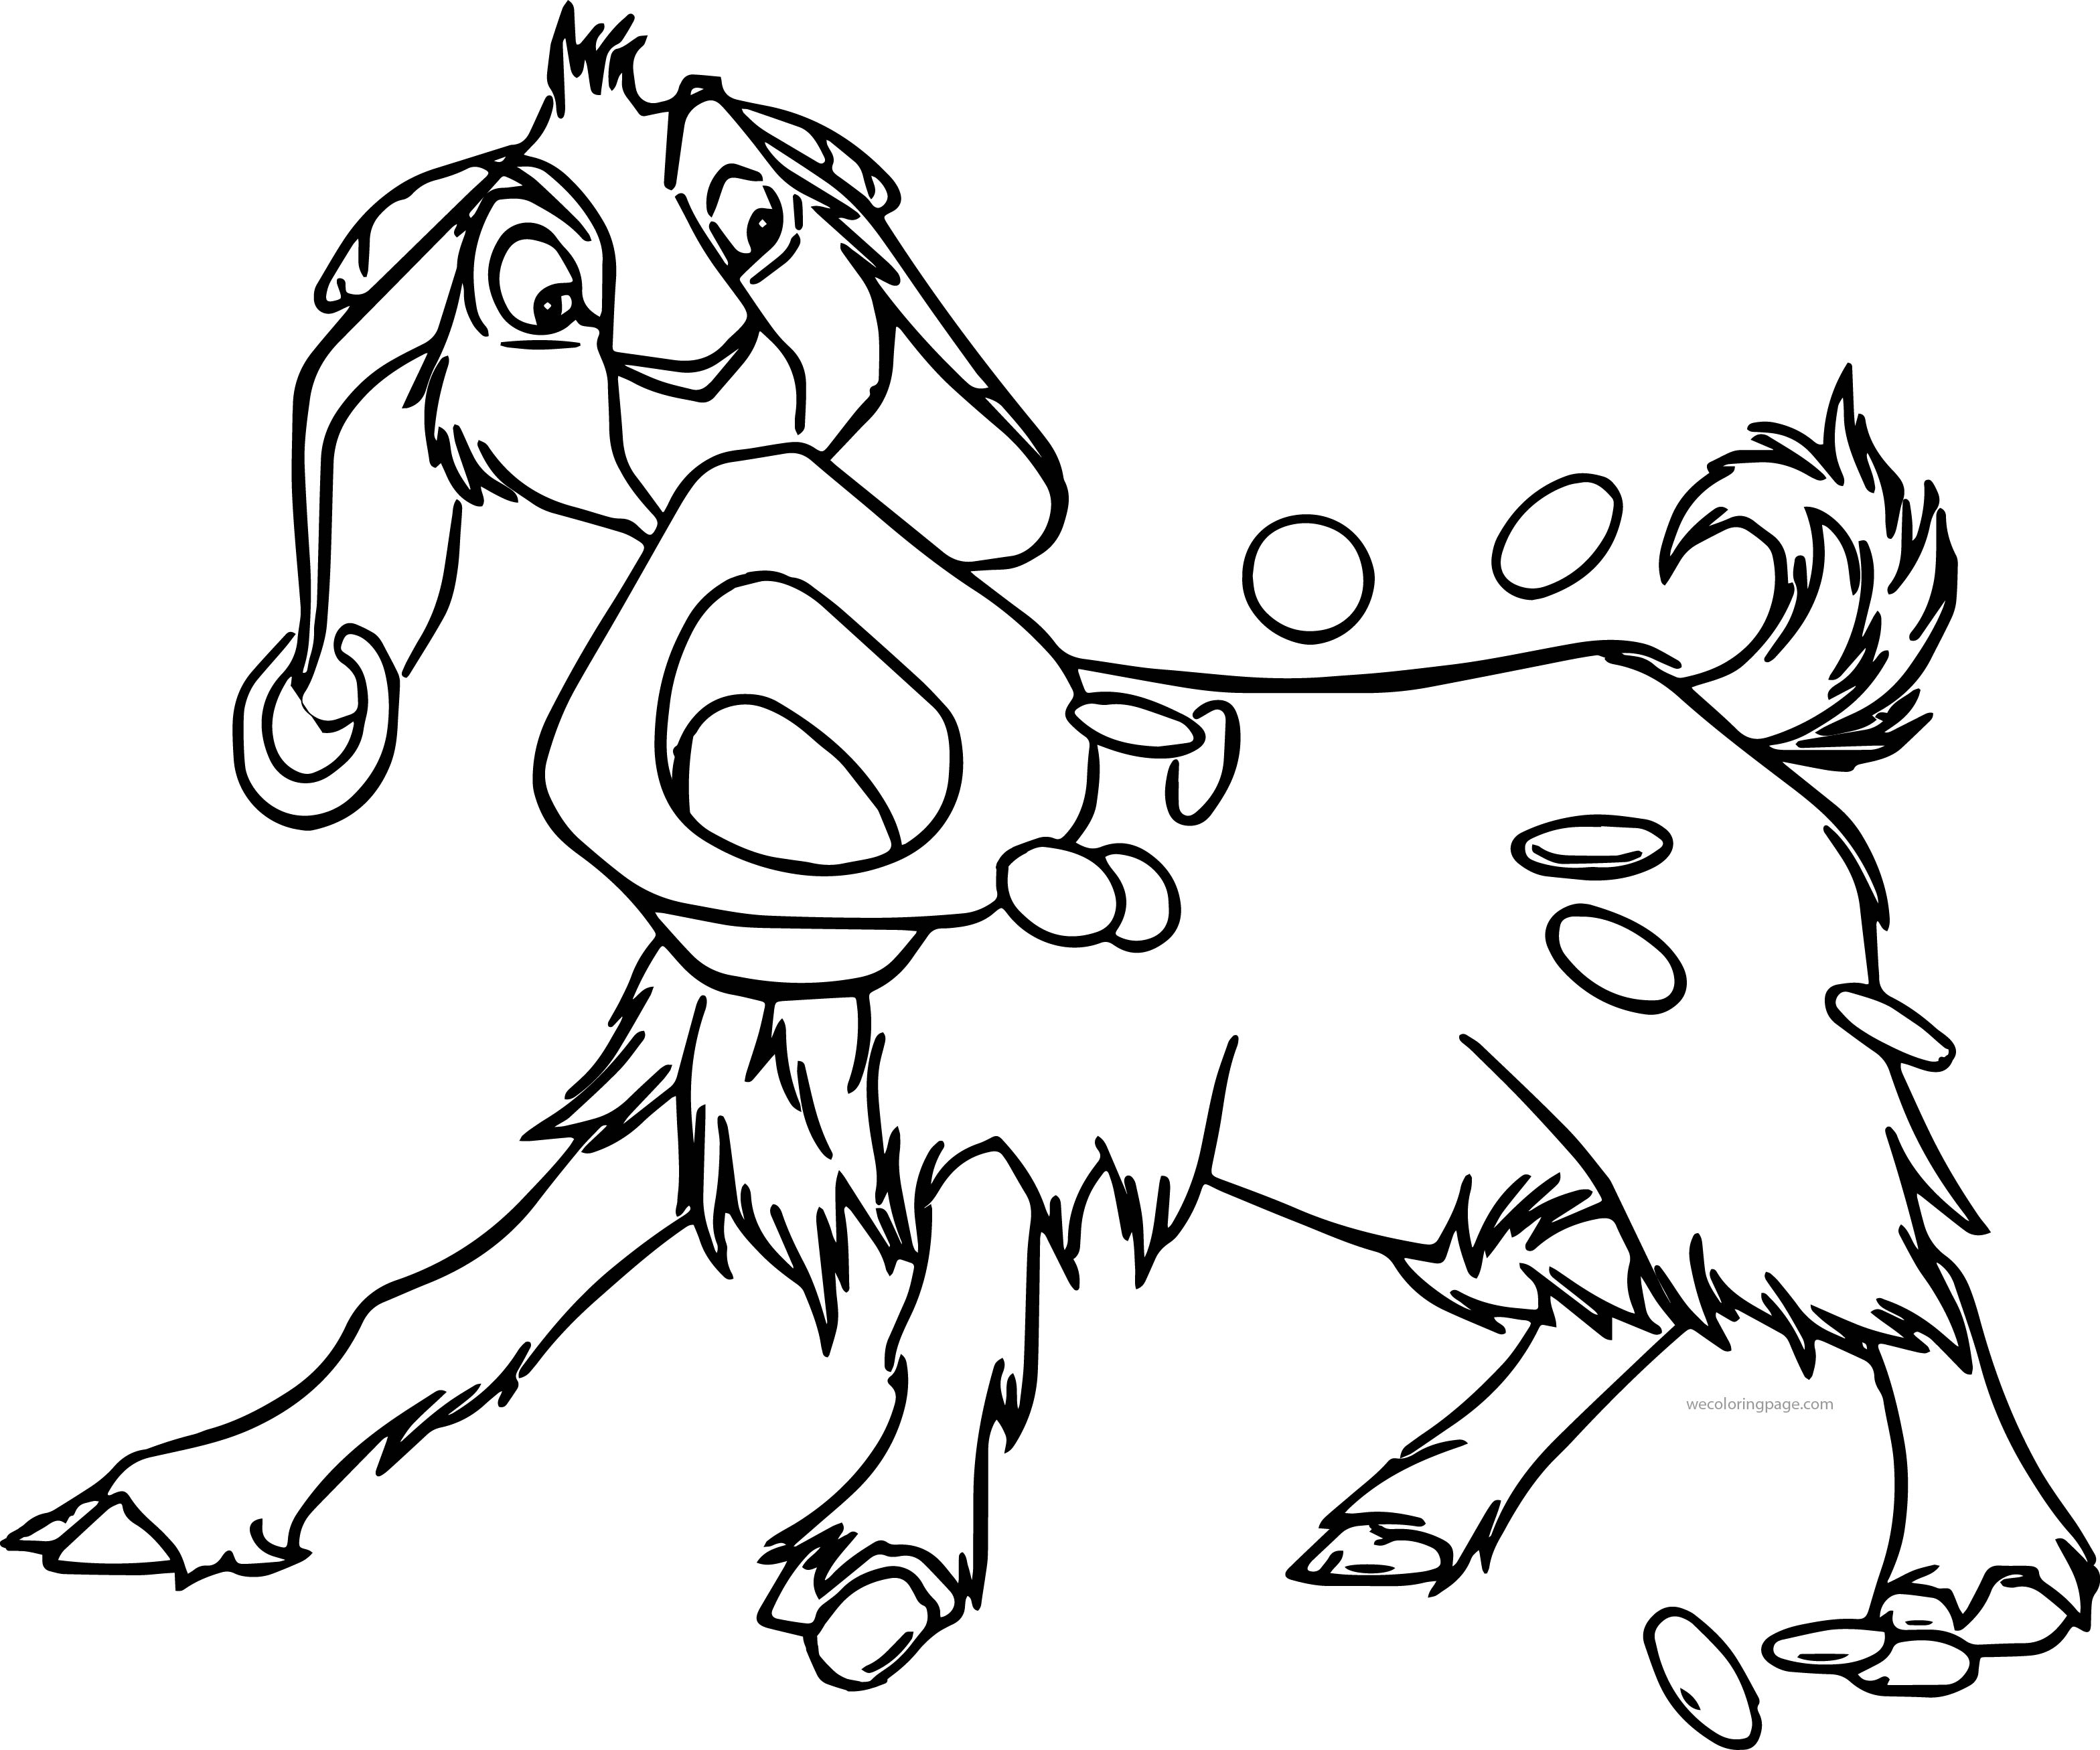 The Hunchback Of Notre Dame Dropcoins Cartoon Coloring Pages